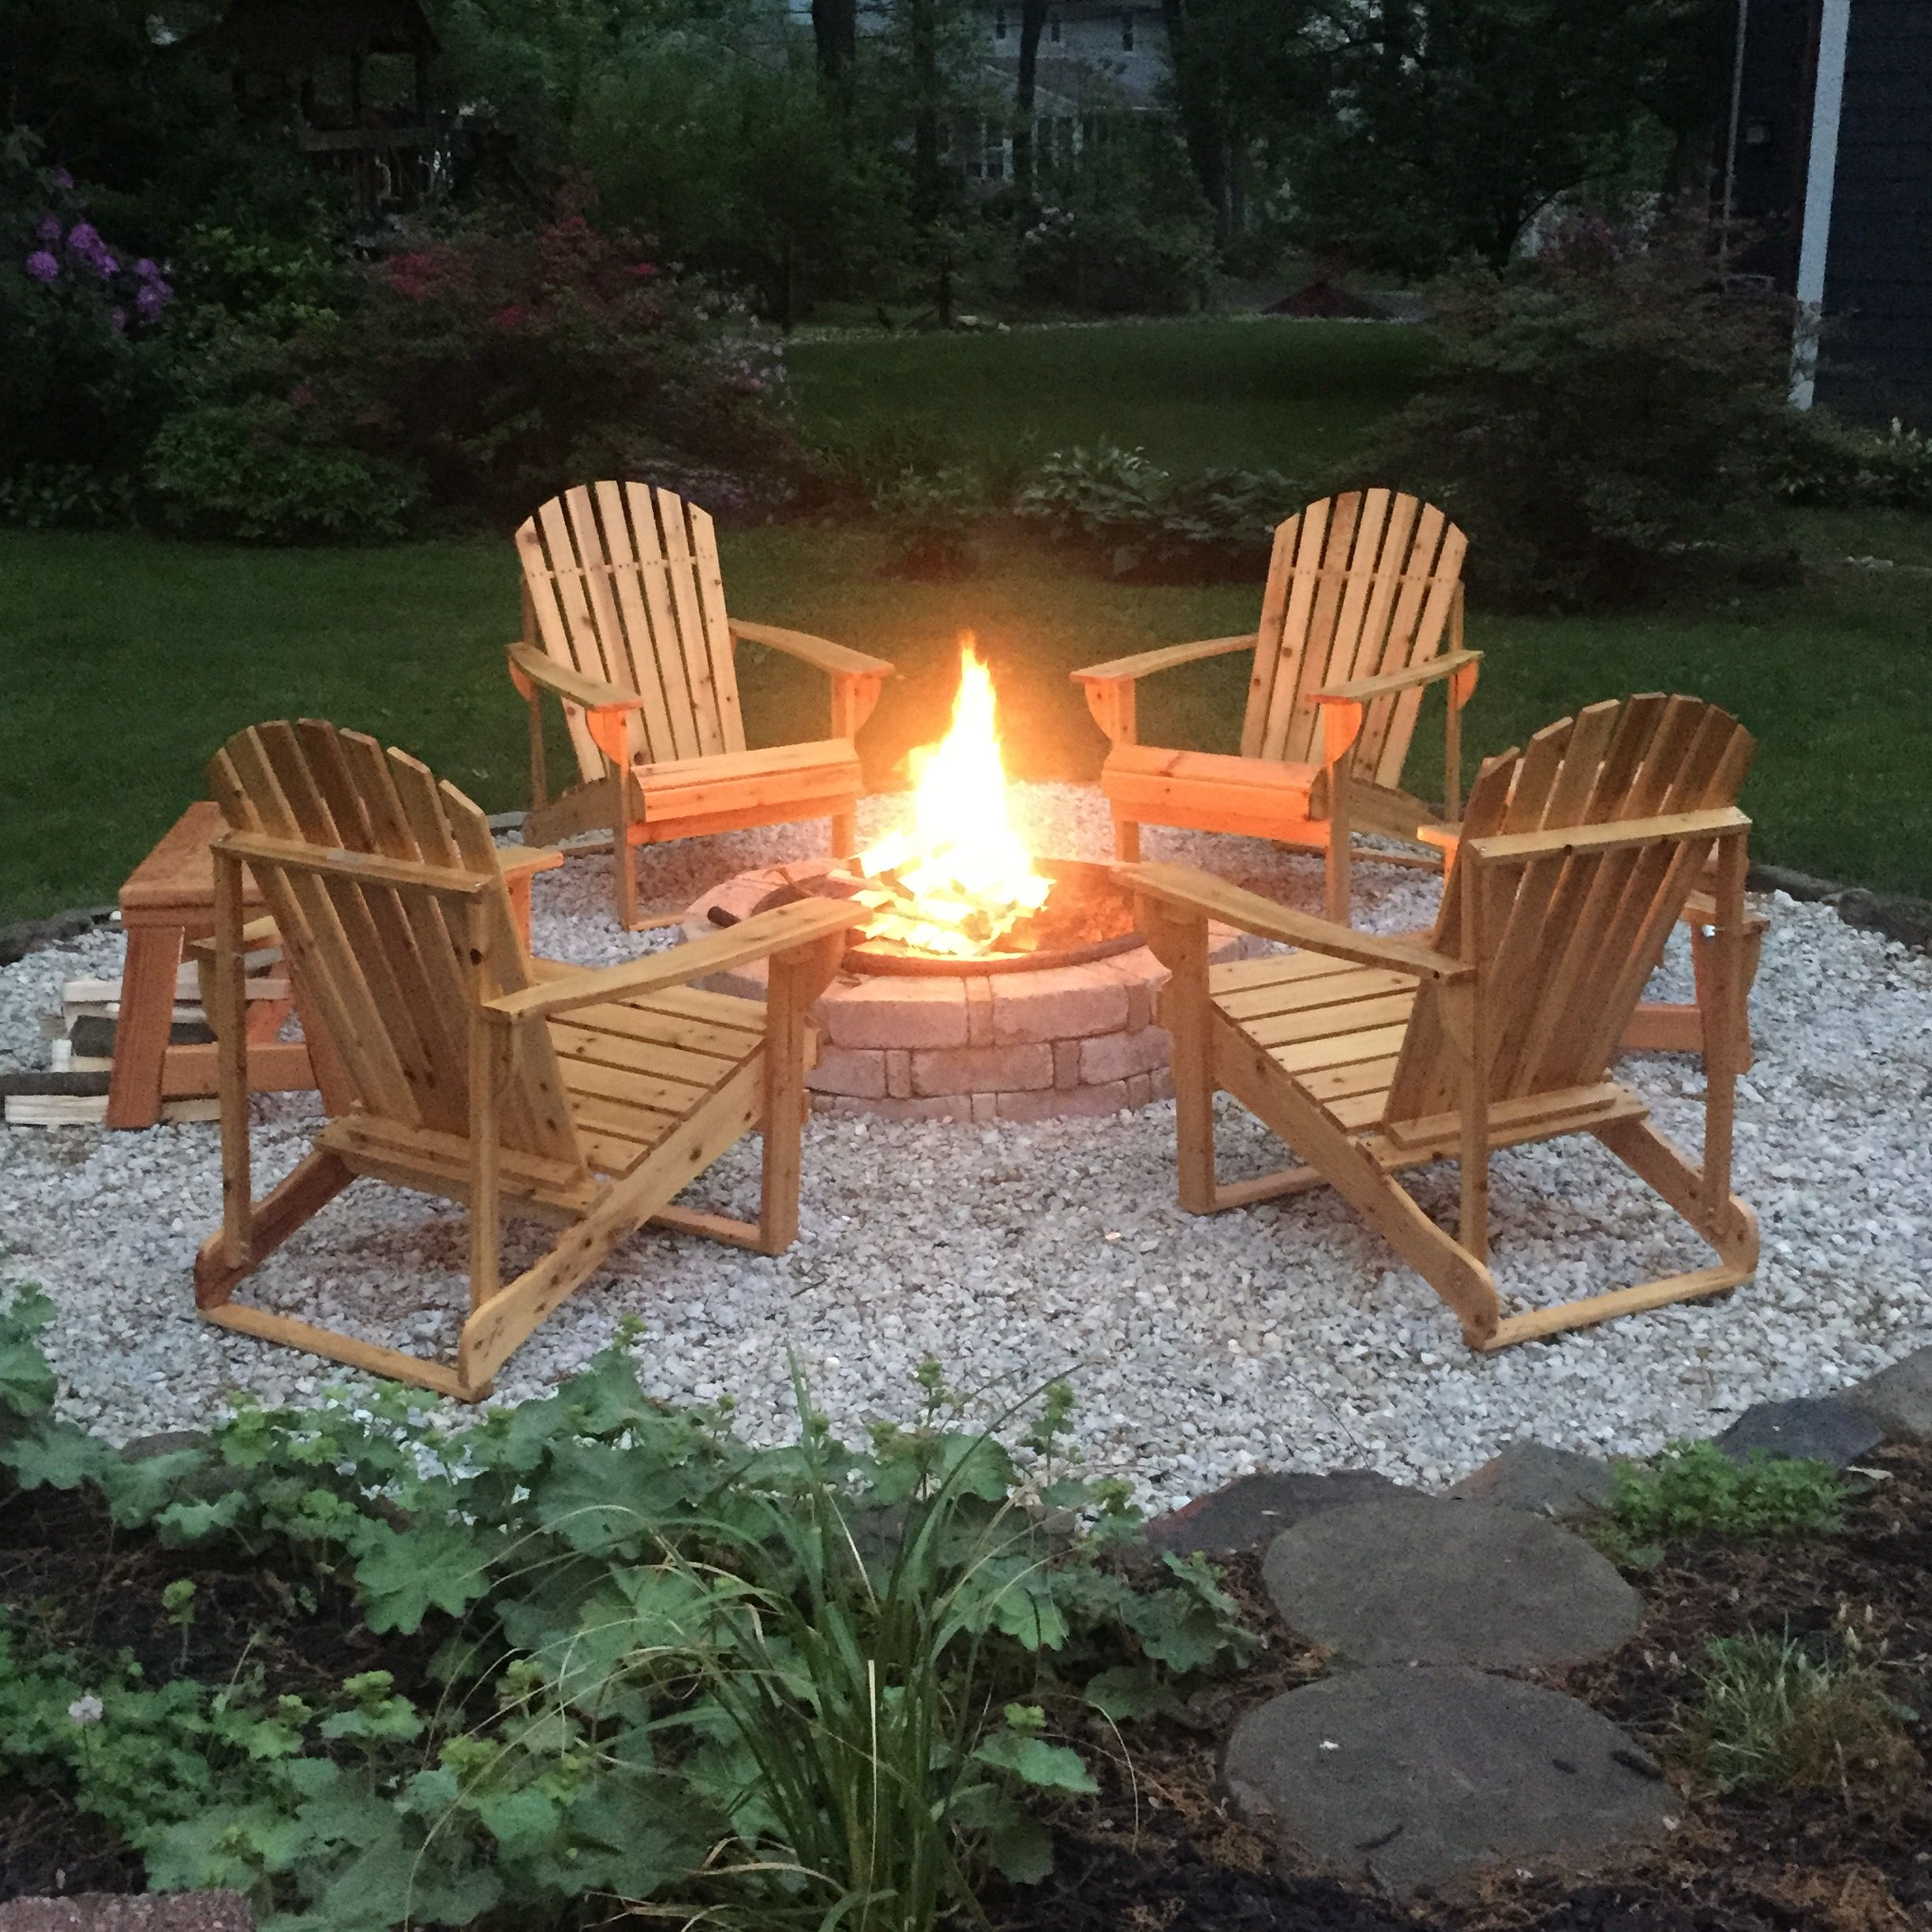 Diy Backyard Fire Pit Complete With Adirondack Chairs And